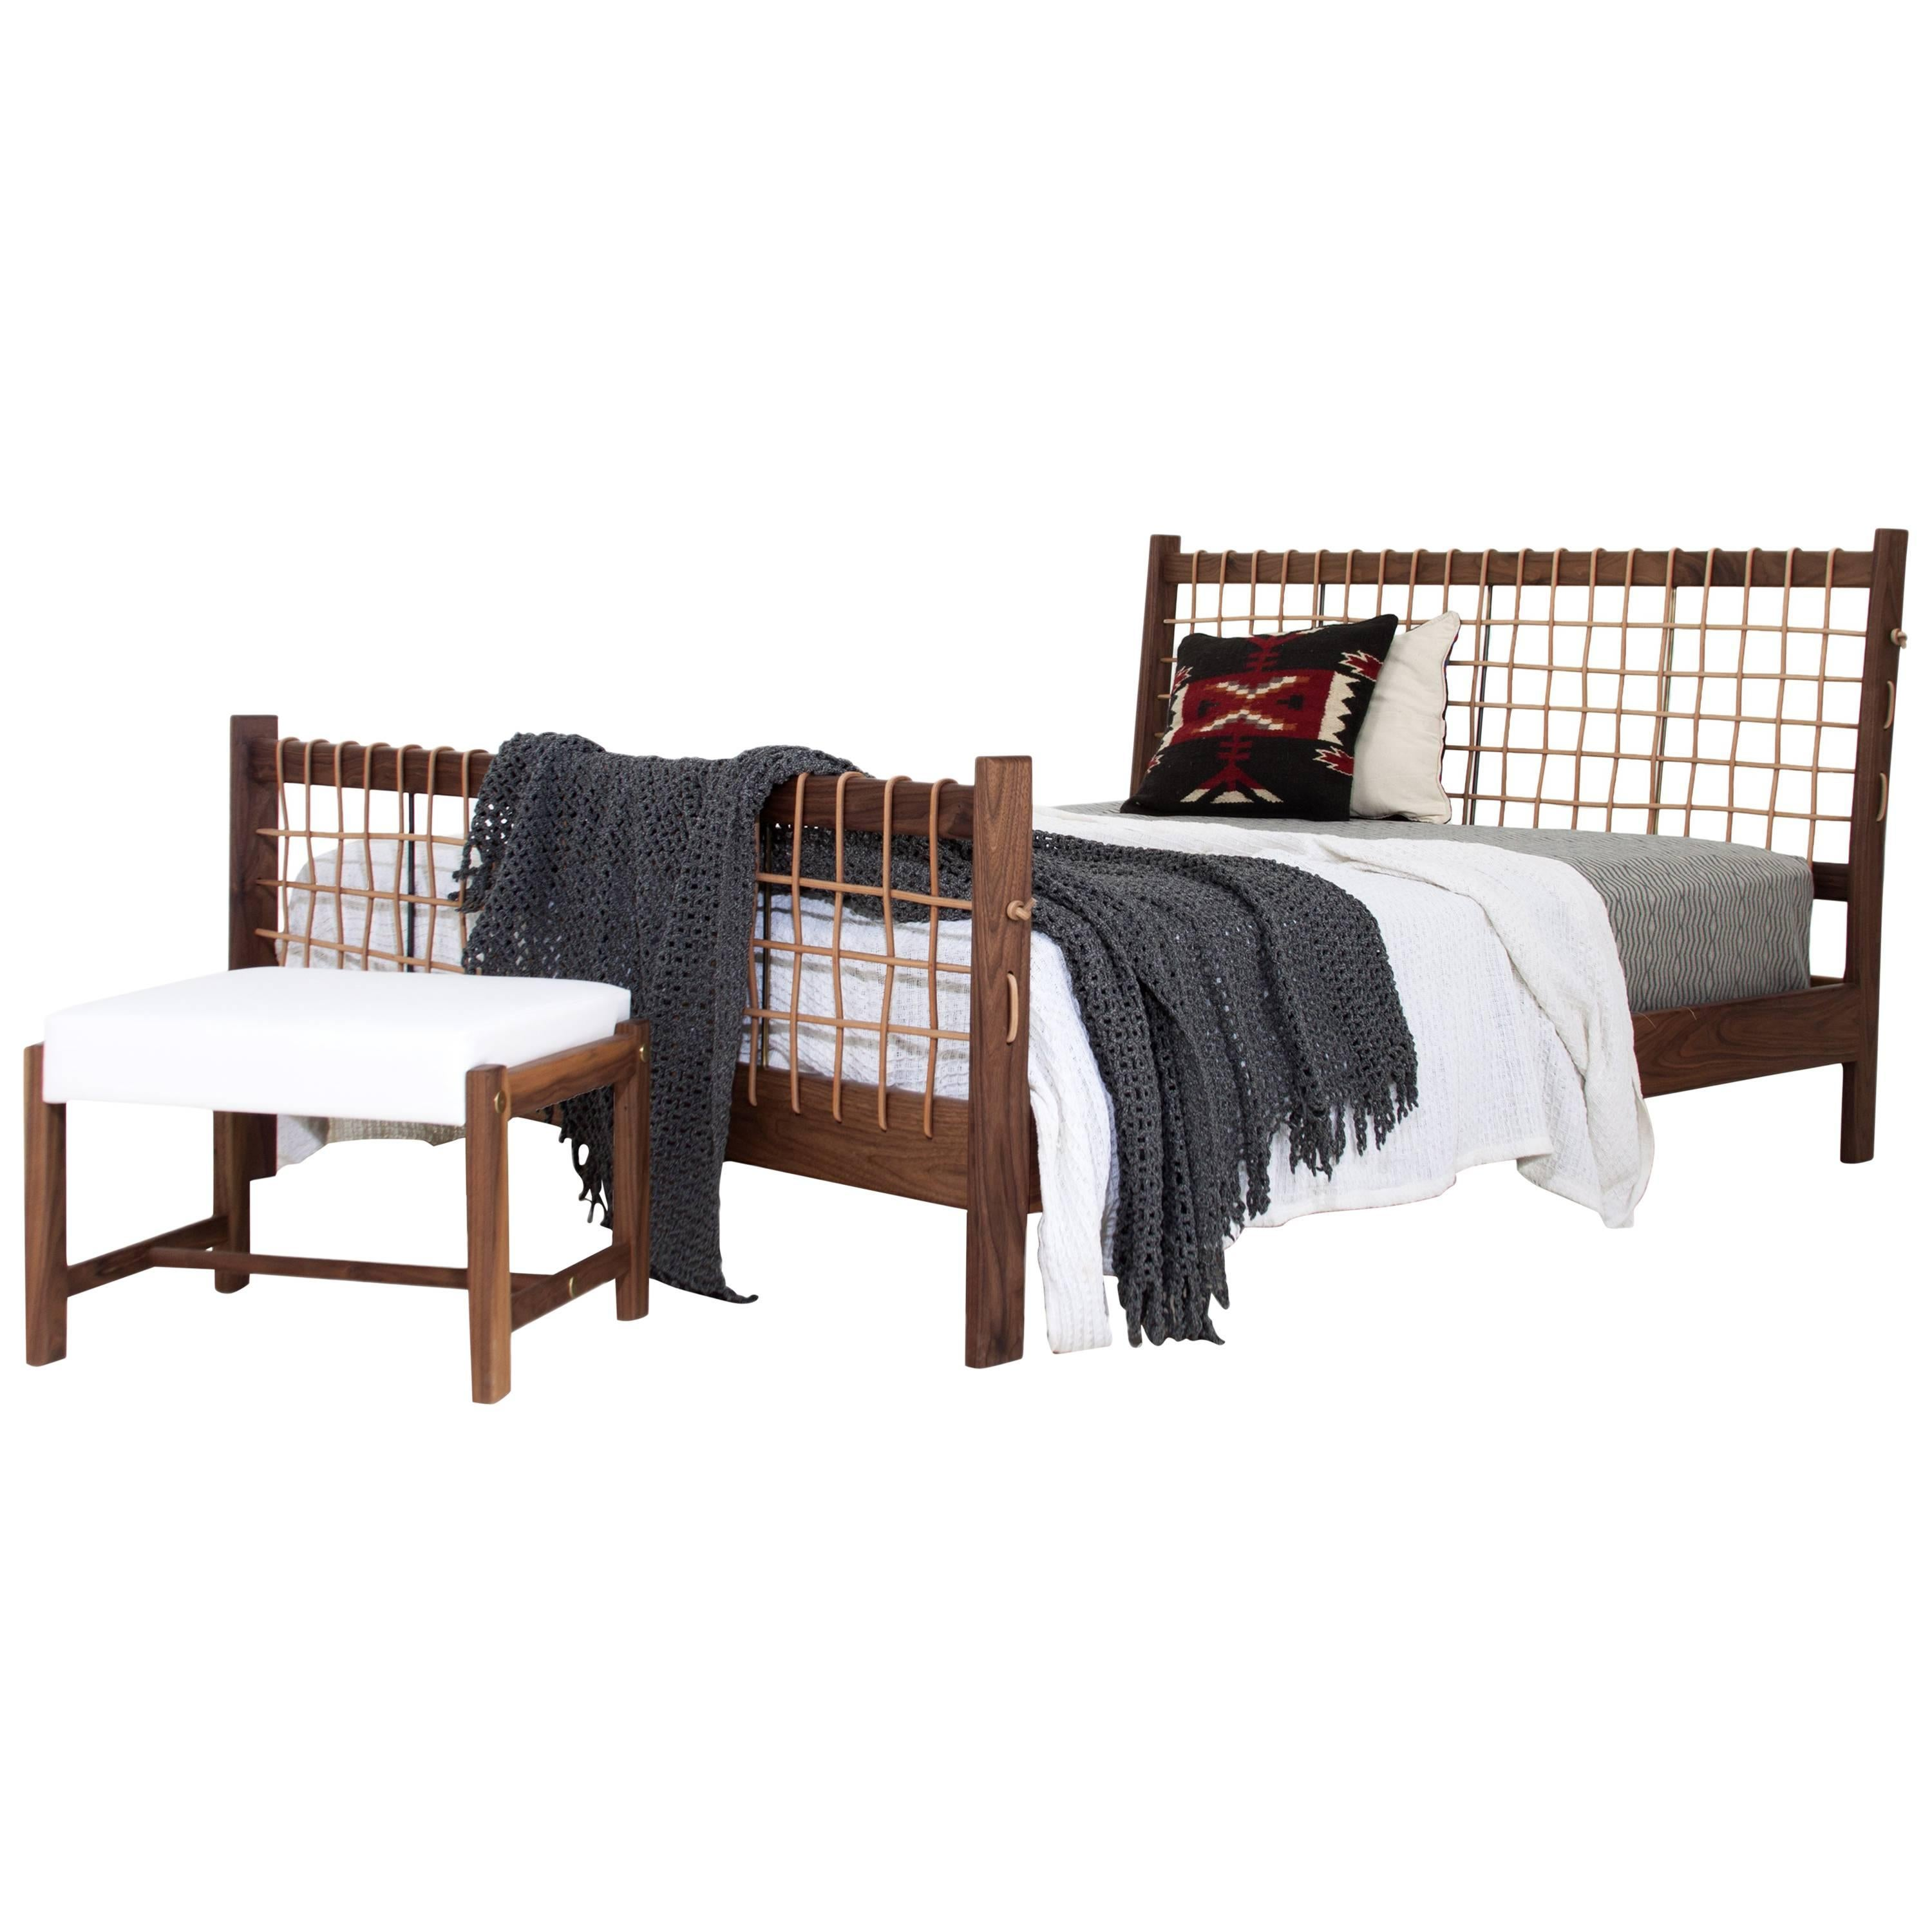 Law Bed by Thomas Hayes Studio